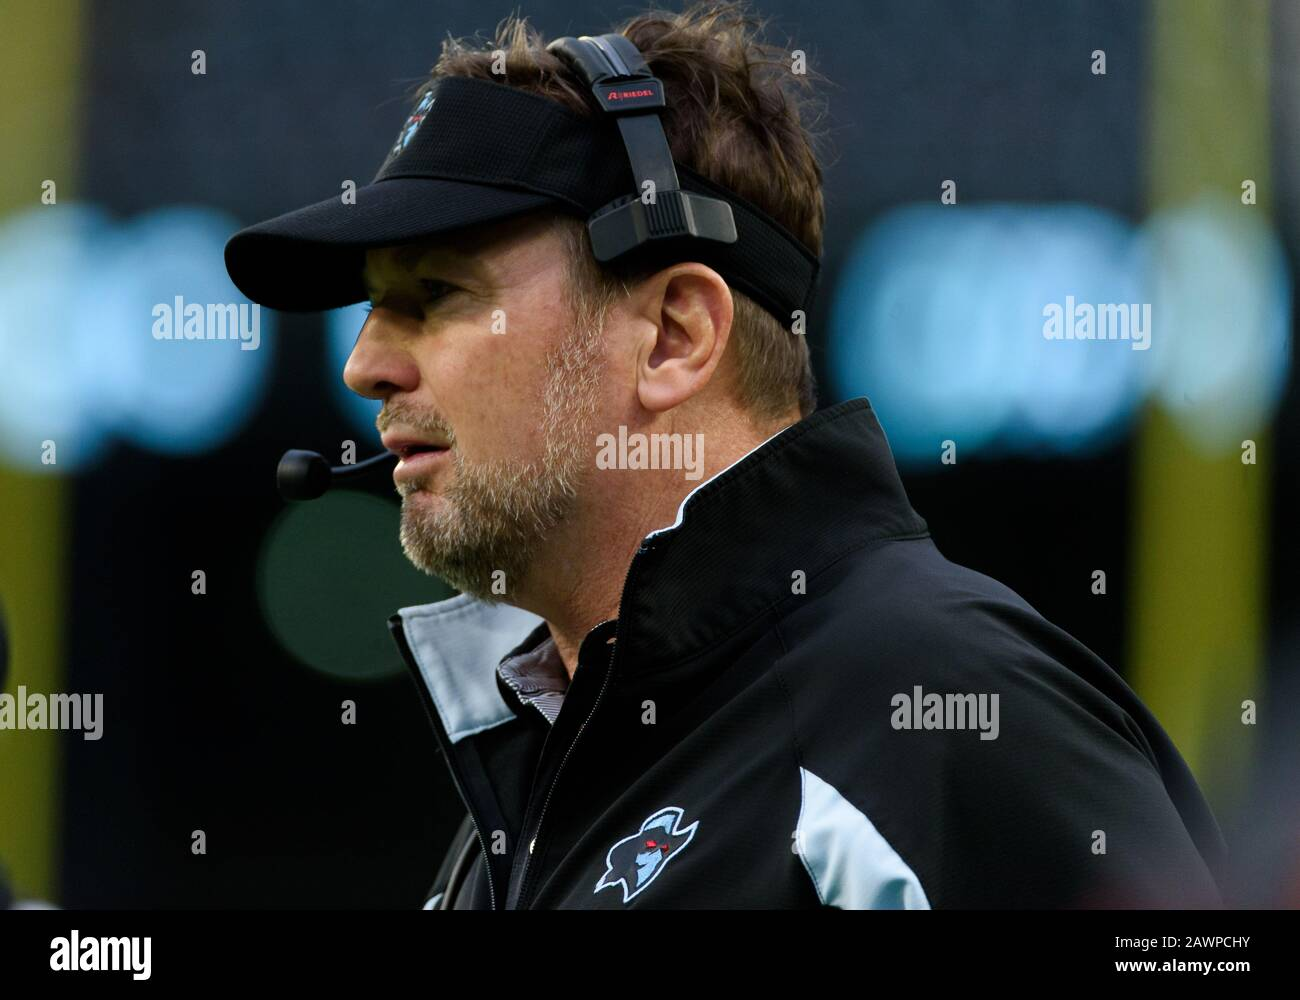 Arlington, Texas, USA. 9th Feb, 2020. Dallas Renegades head coach Bob Stoops during the 1st half of the XFL game between St. Louis Battlehawks and the Dallas Renegades at Globe Life Park in Arlington, Texas. Credit: Cal Sport Media/Alamy Live News Stock Photo